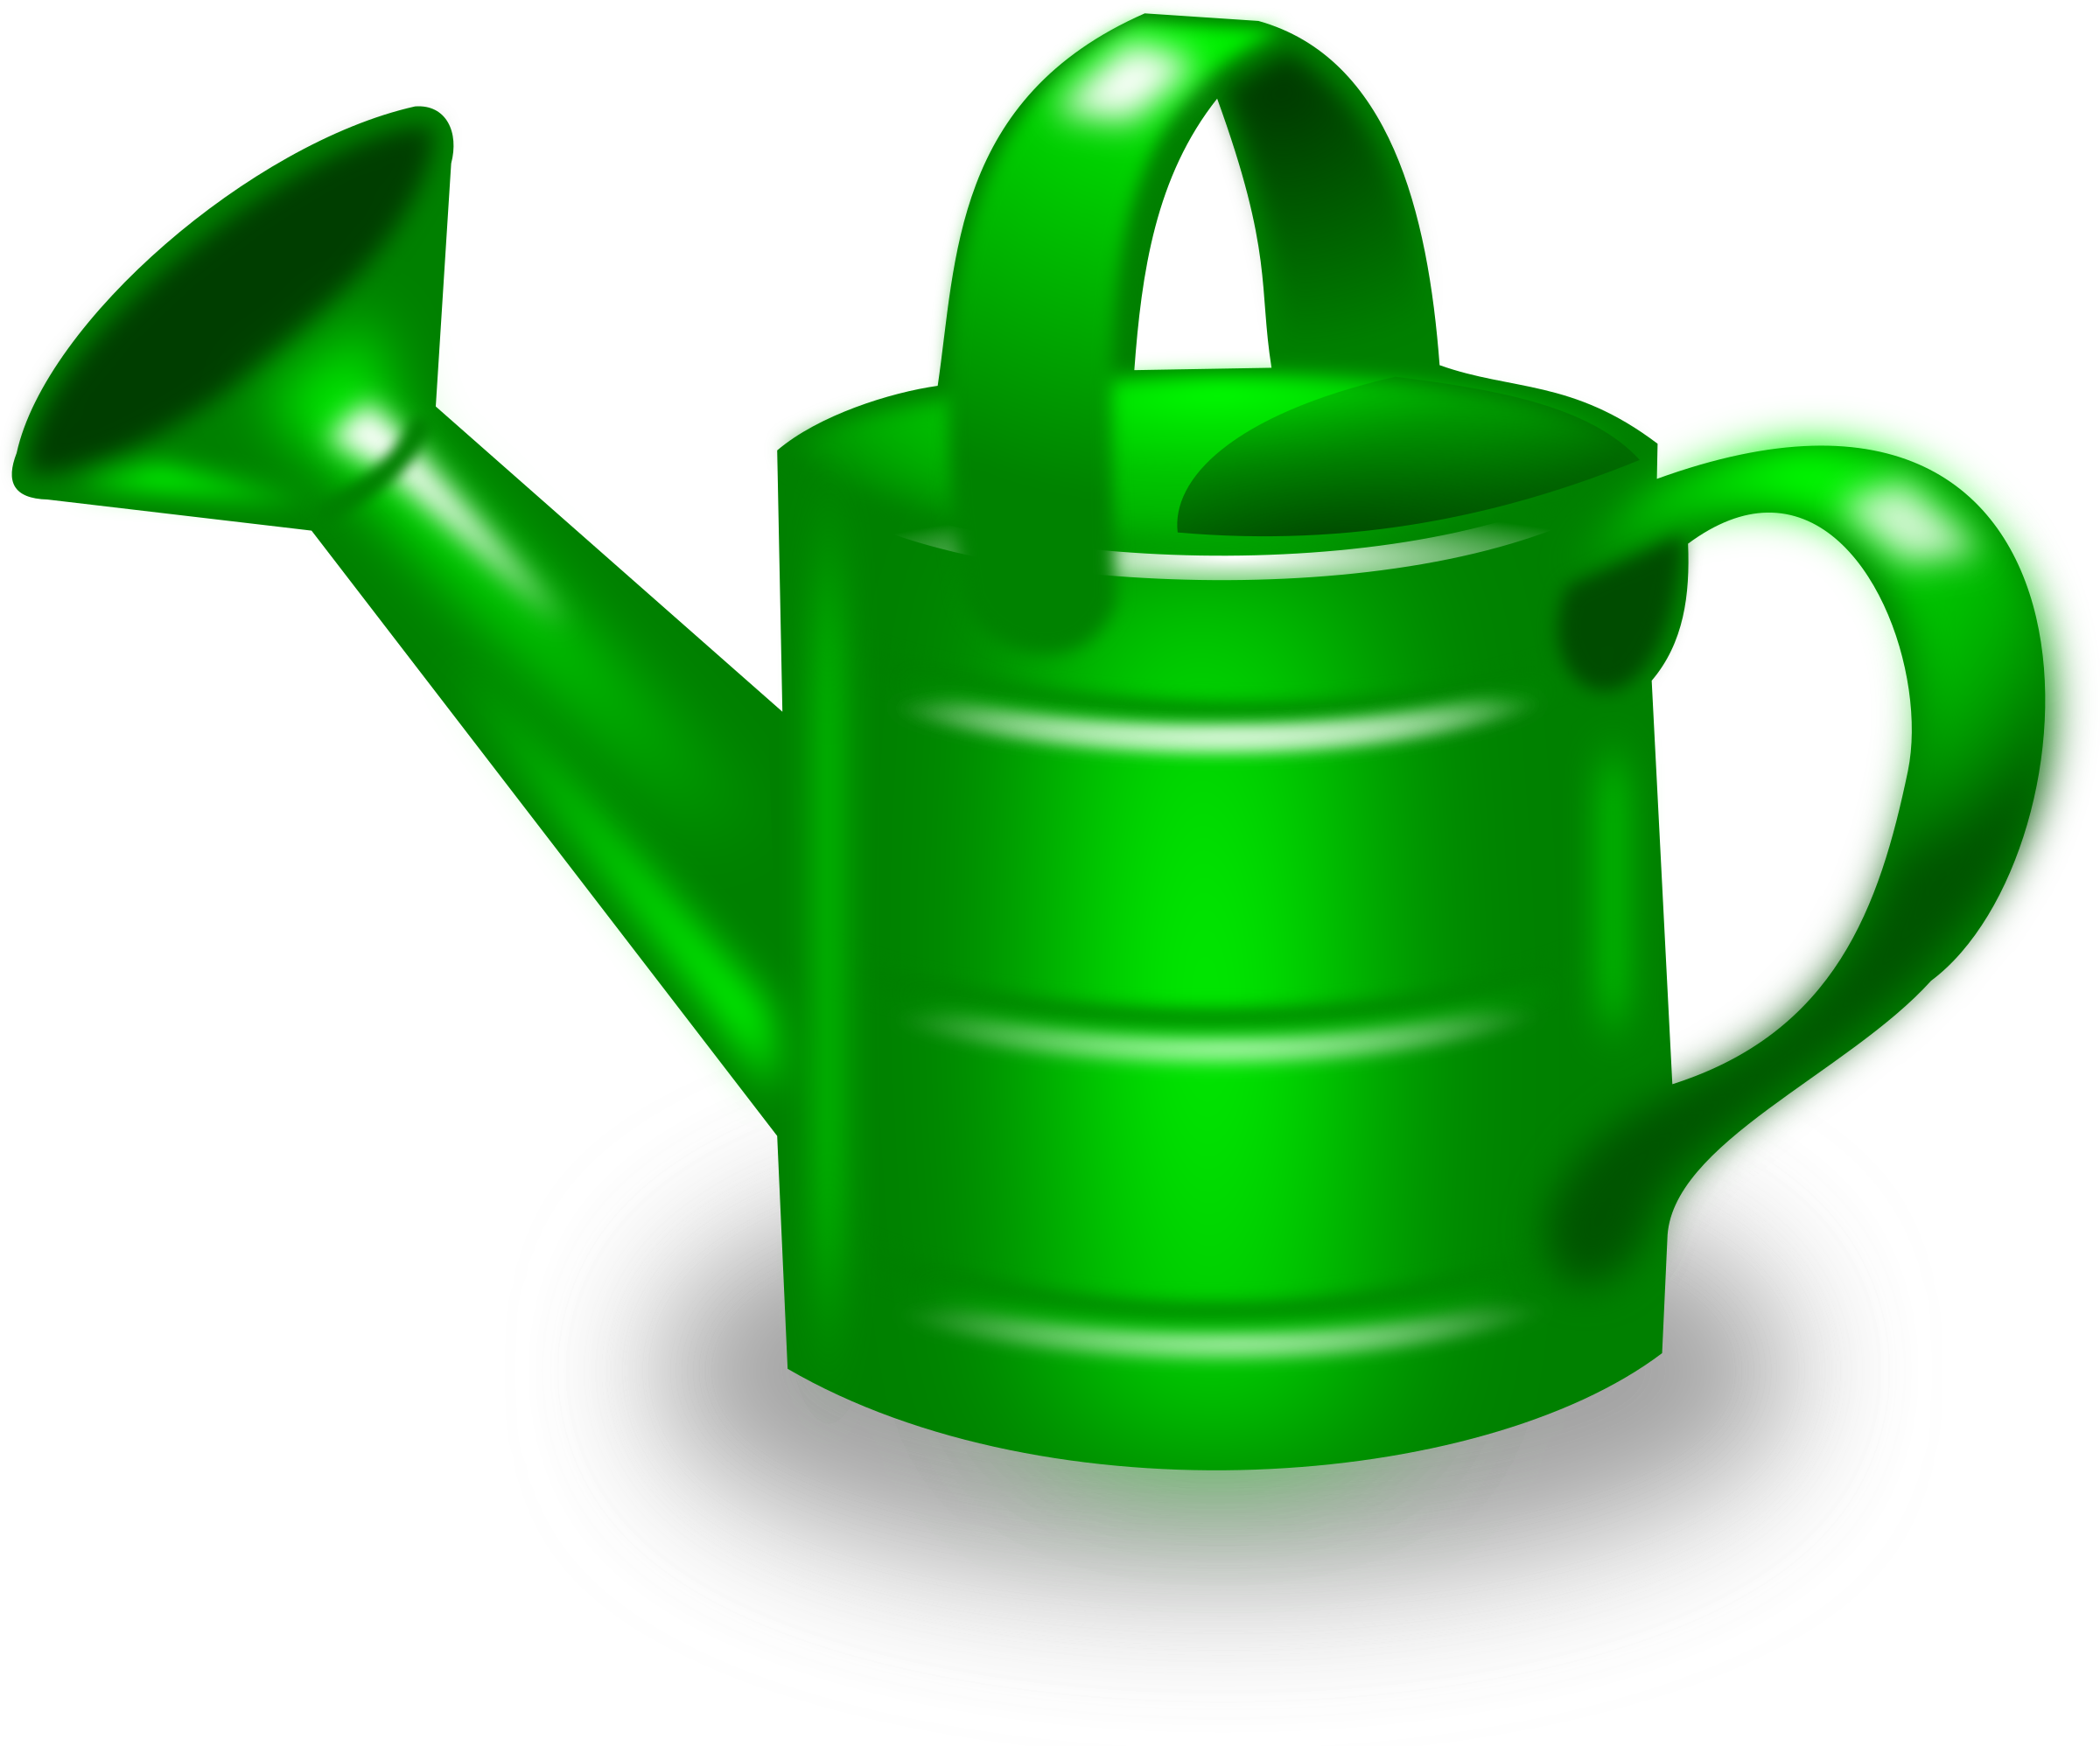 clipart library library Watering can